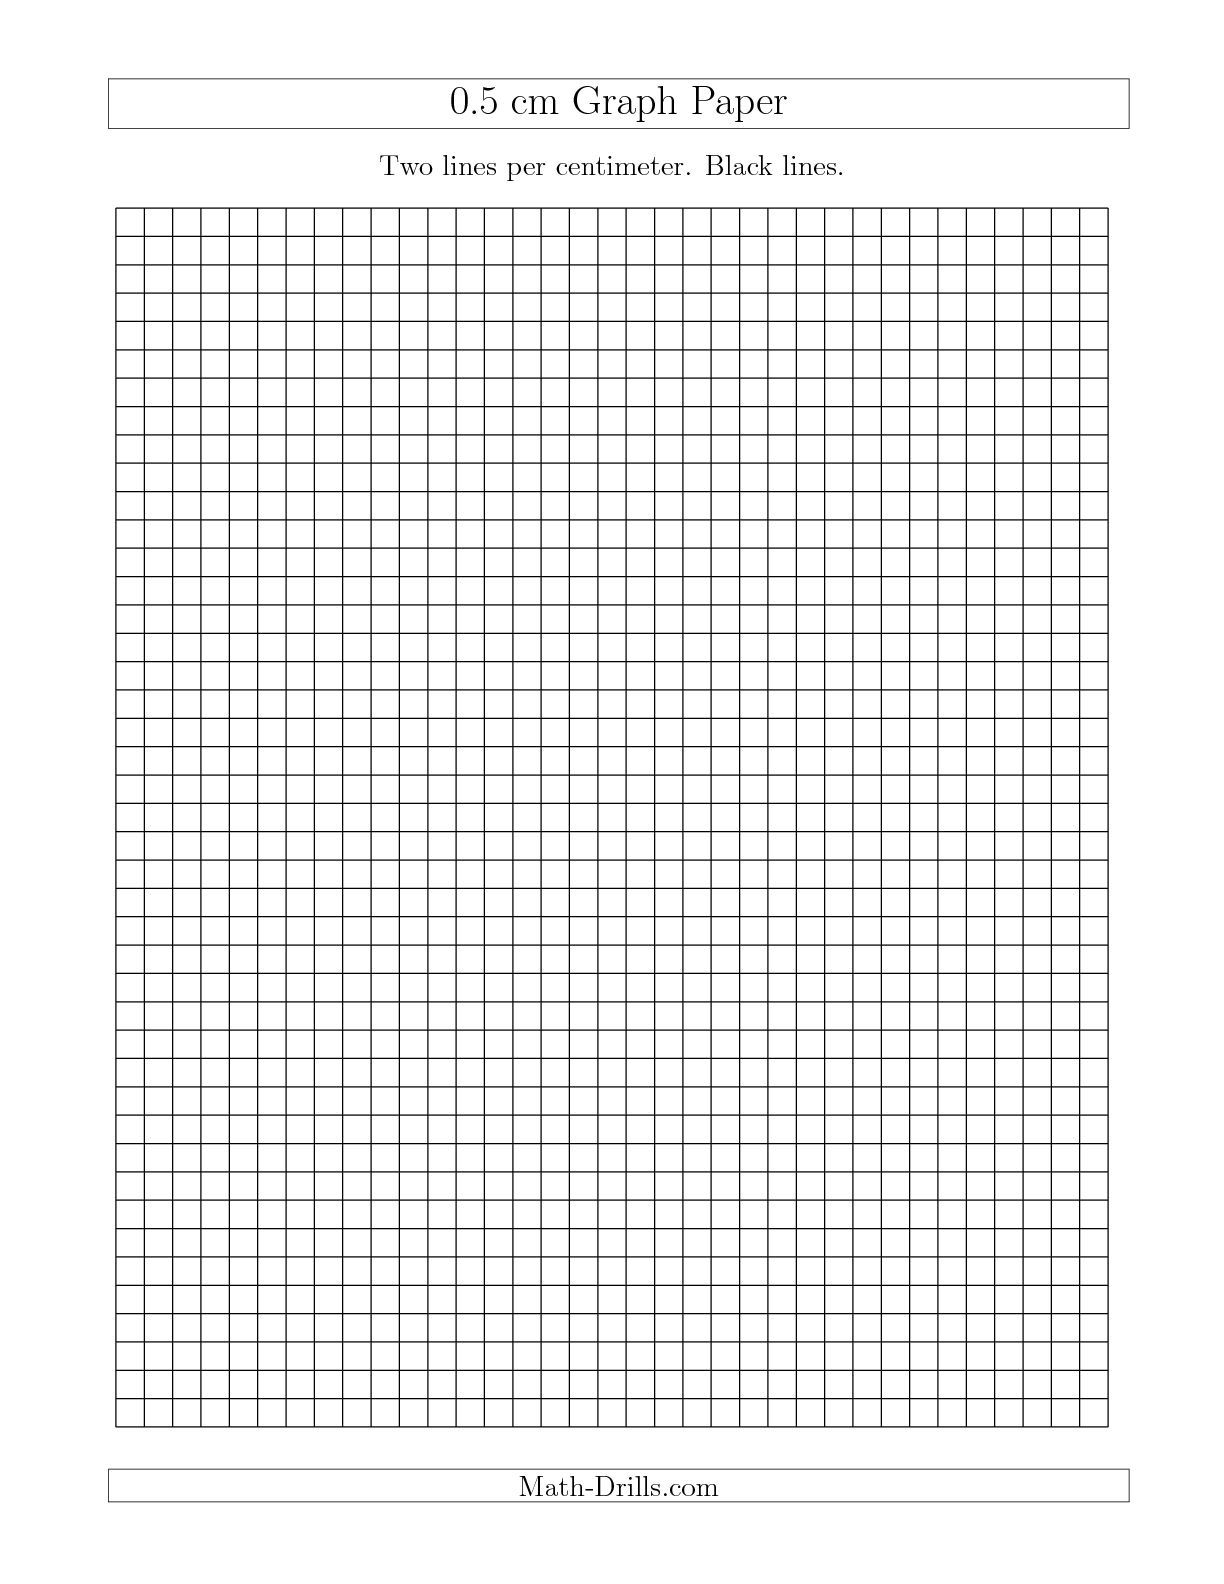 The 0 5 Cm Graph Paper With Black Lines A Math Worksheet From The Graph Paper Page At Math